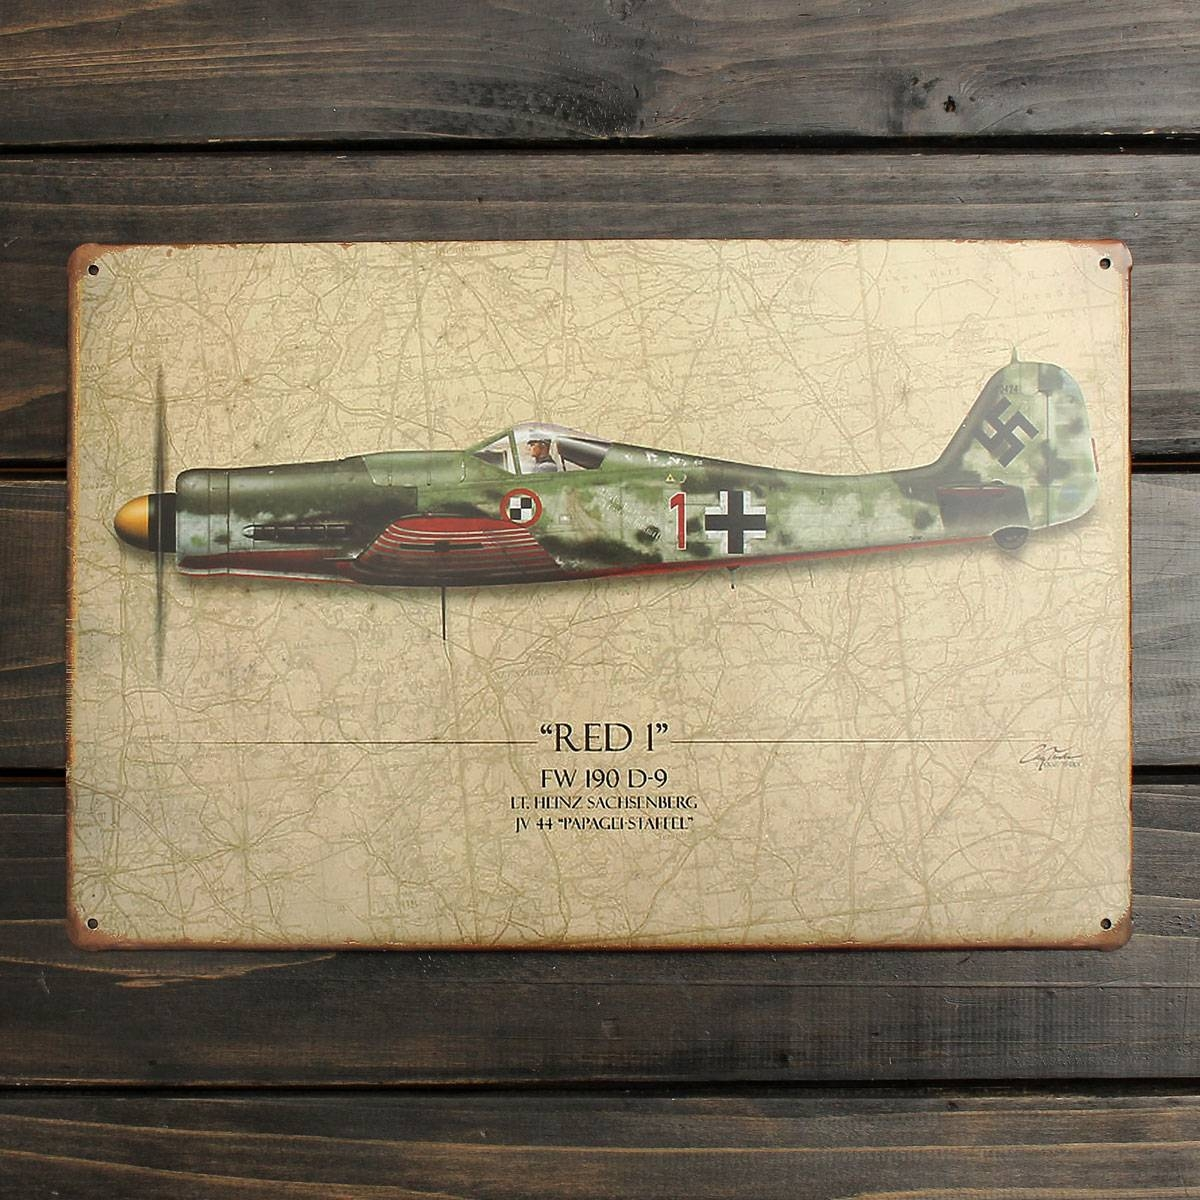 20X30Cm World War Vintage Military Battle Plane Sheet Metal Intended For Current Sheet Metal Wall Art (View 1 of 20)